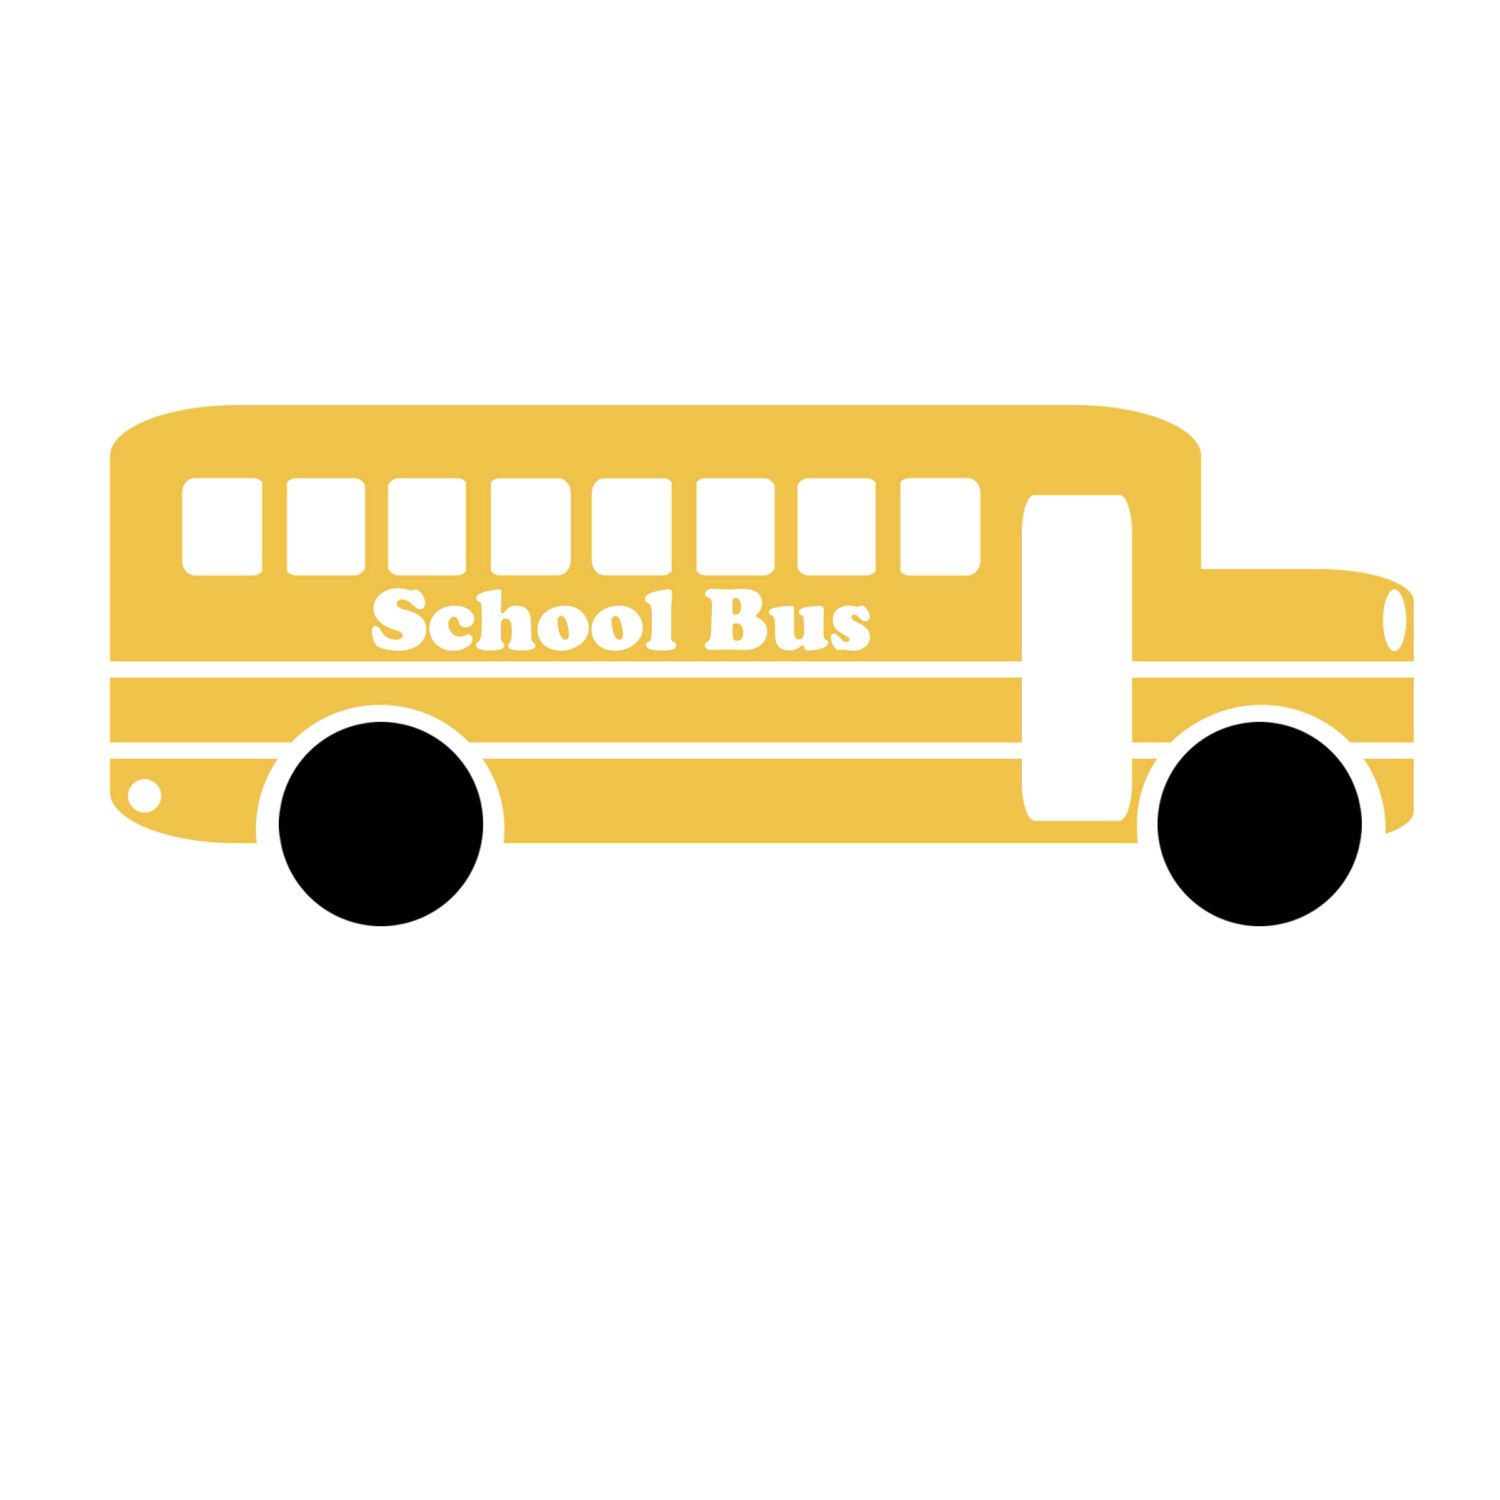 school bus silhouette at getdrawings com free for personal use rh getdrawings com School Bus Black and White School Bus Cut Out Pattern